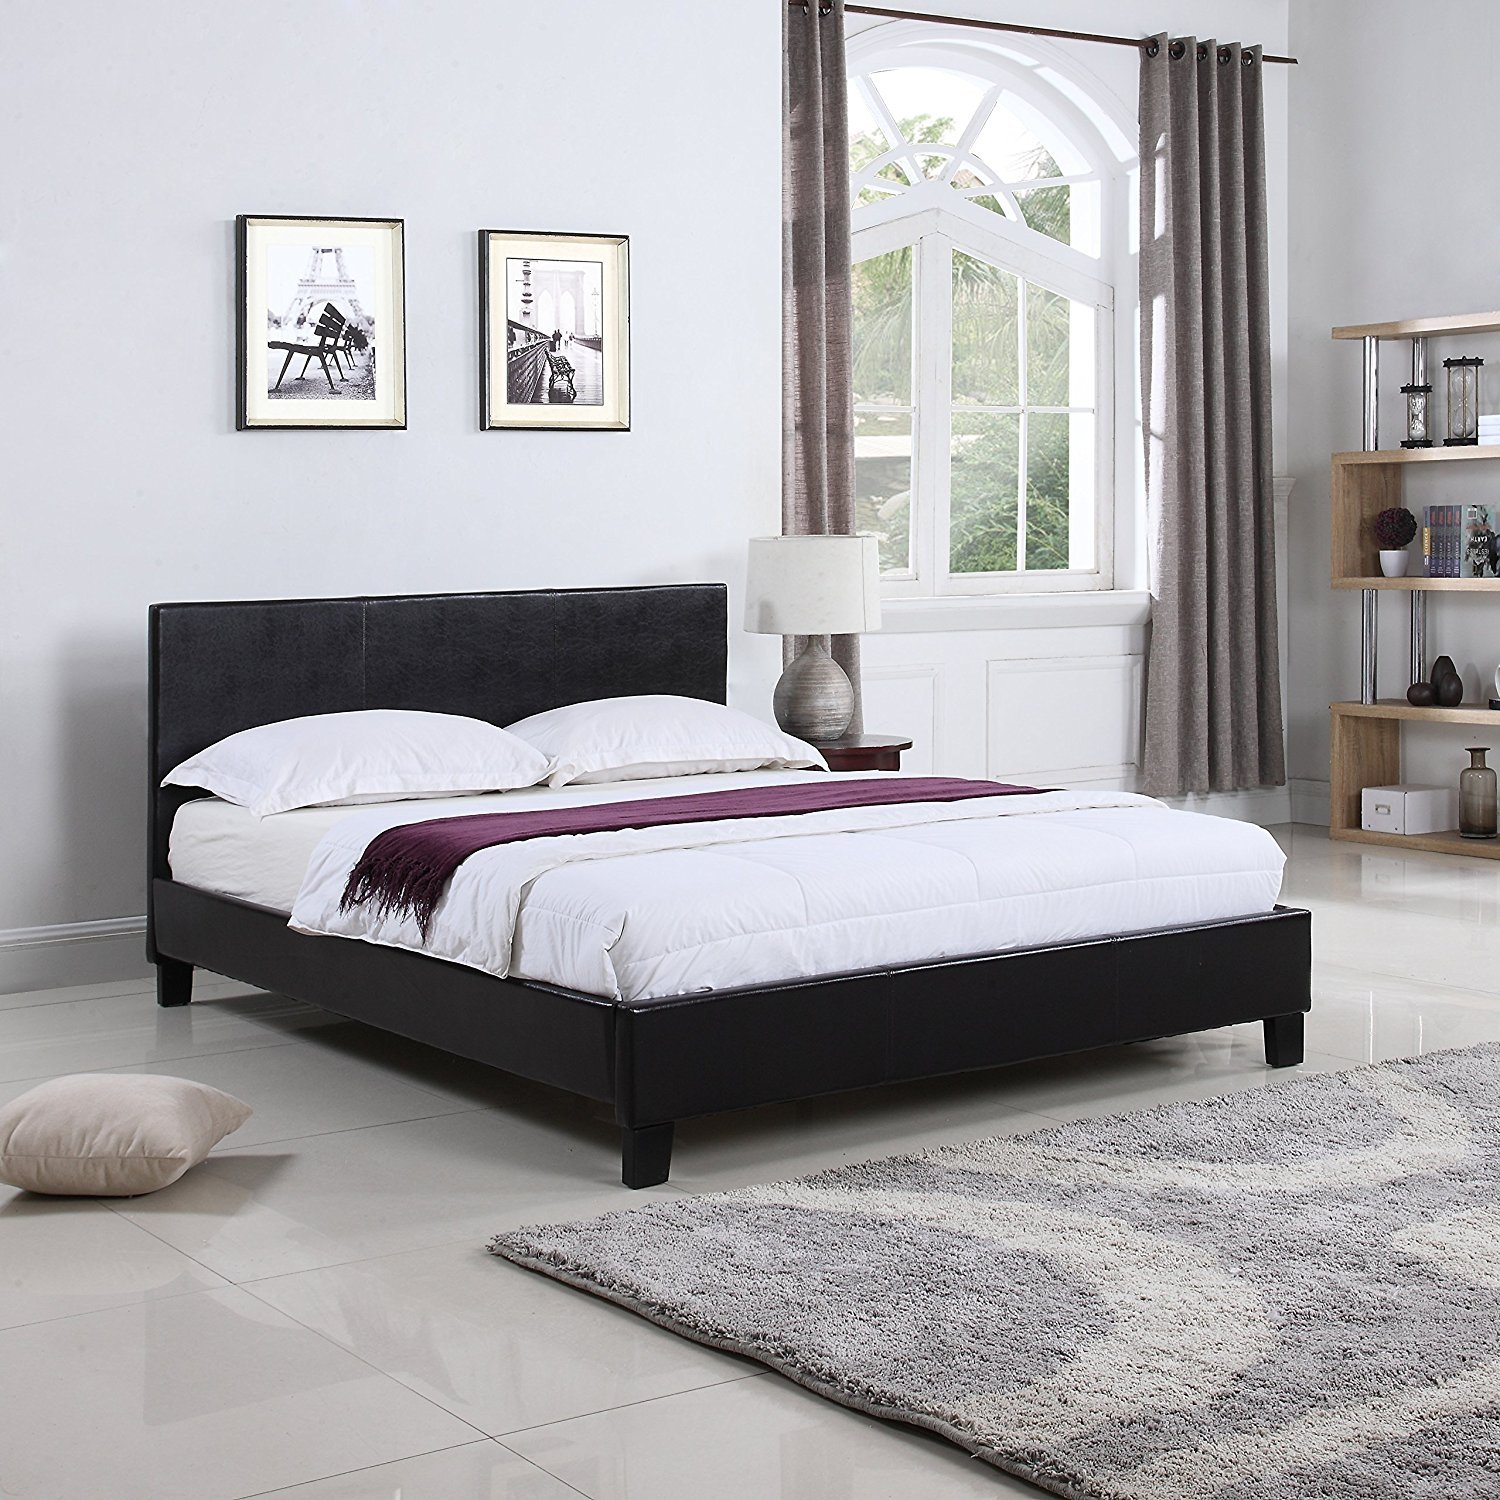 Classic Deluxe Bonded Leather Low Profile Platform Bed Frame with ...